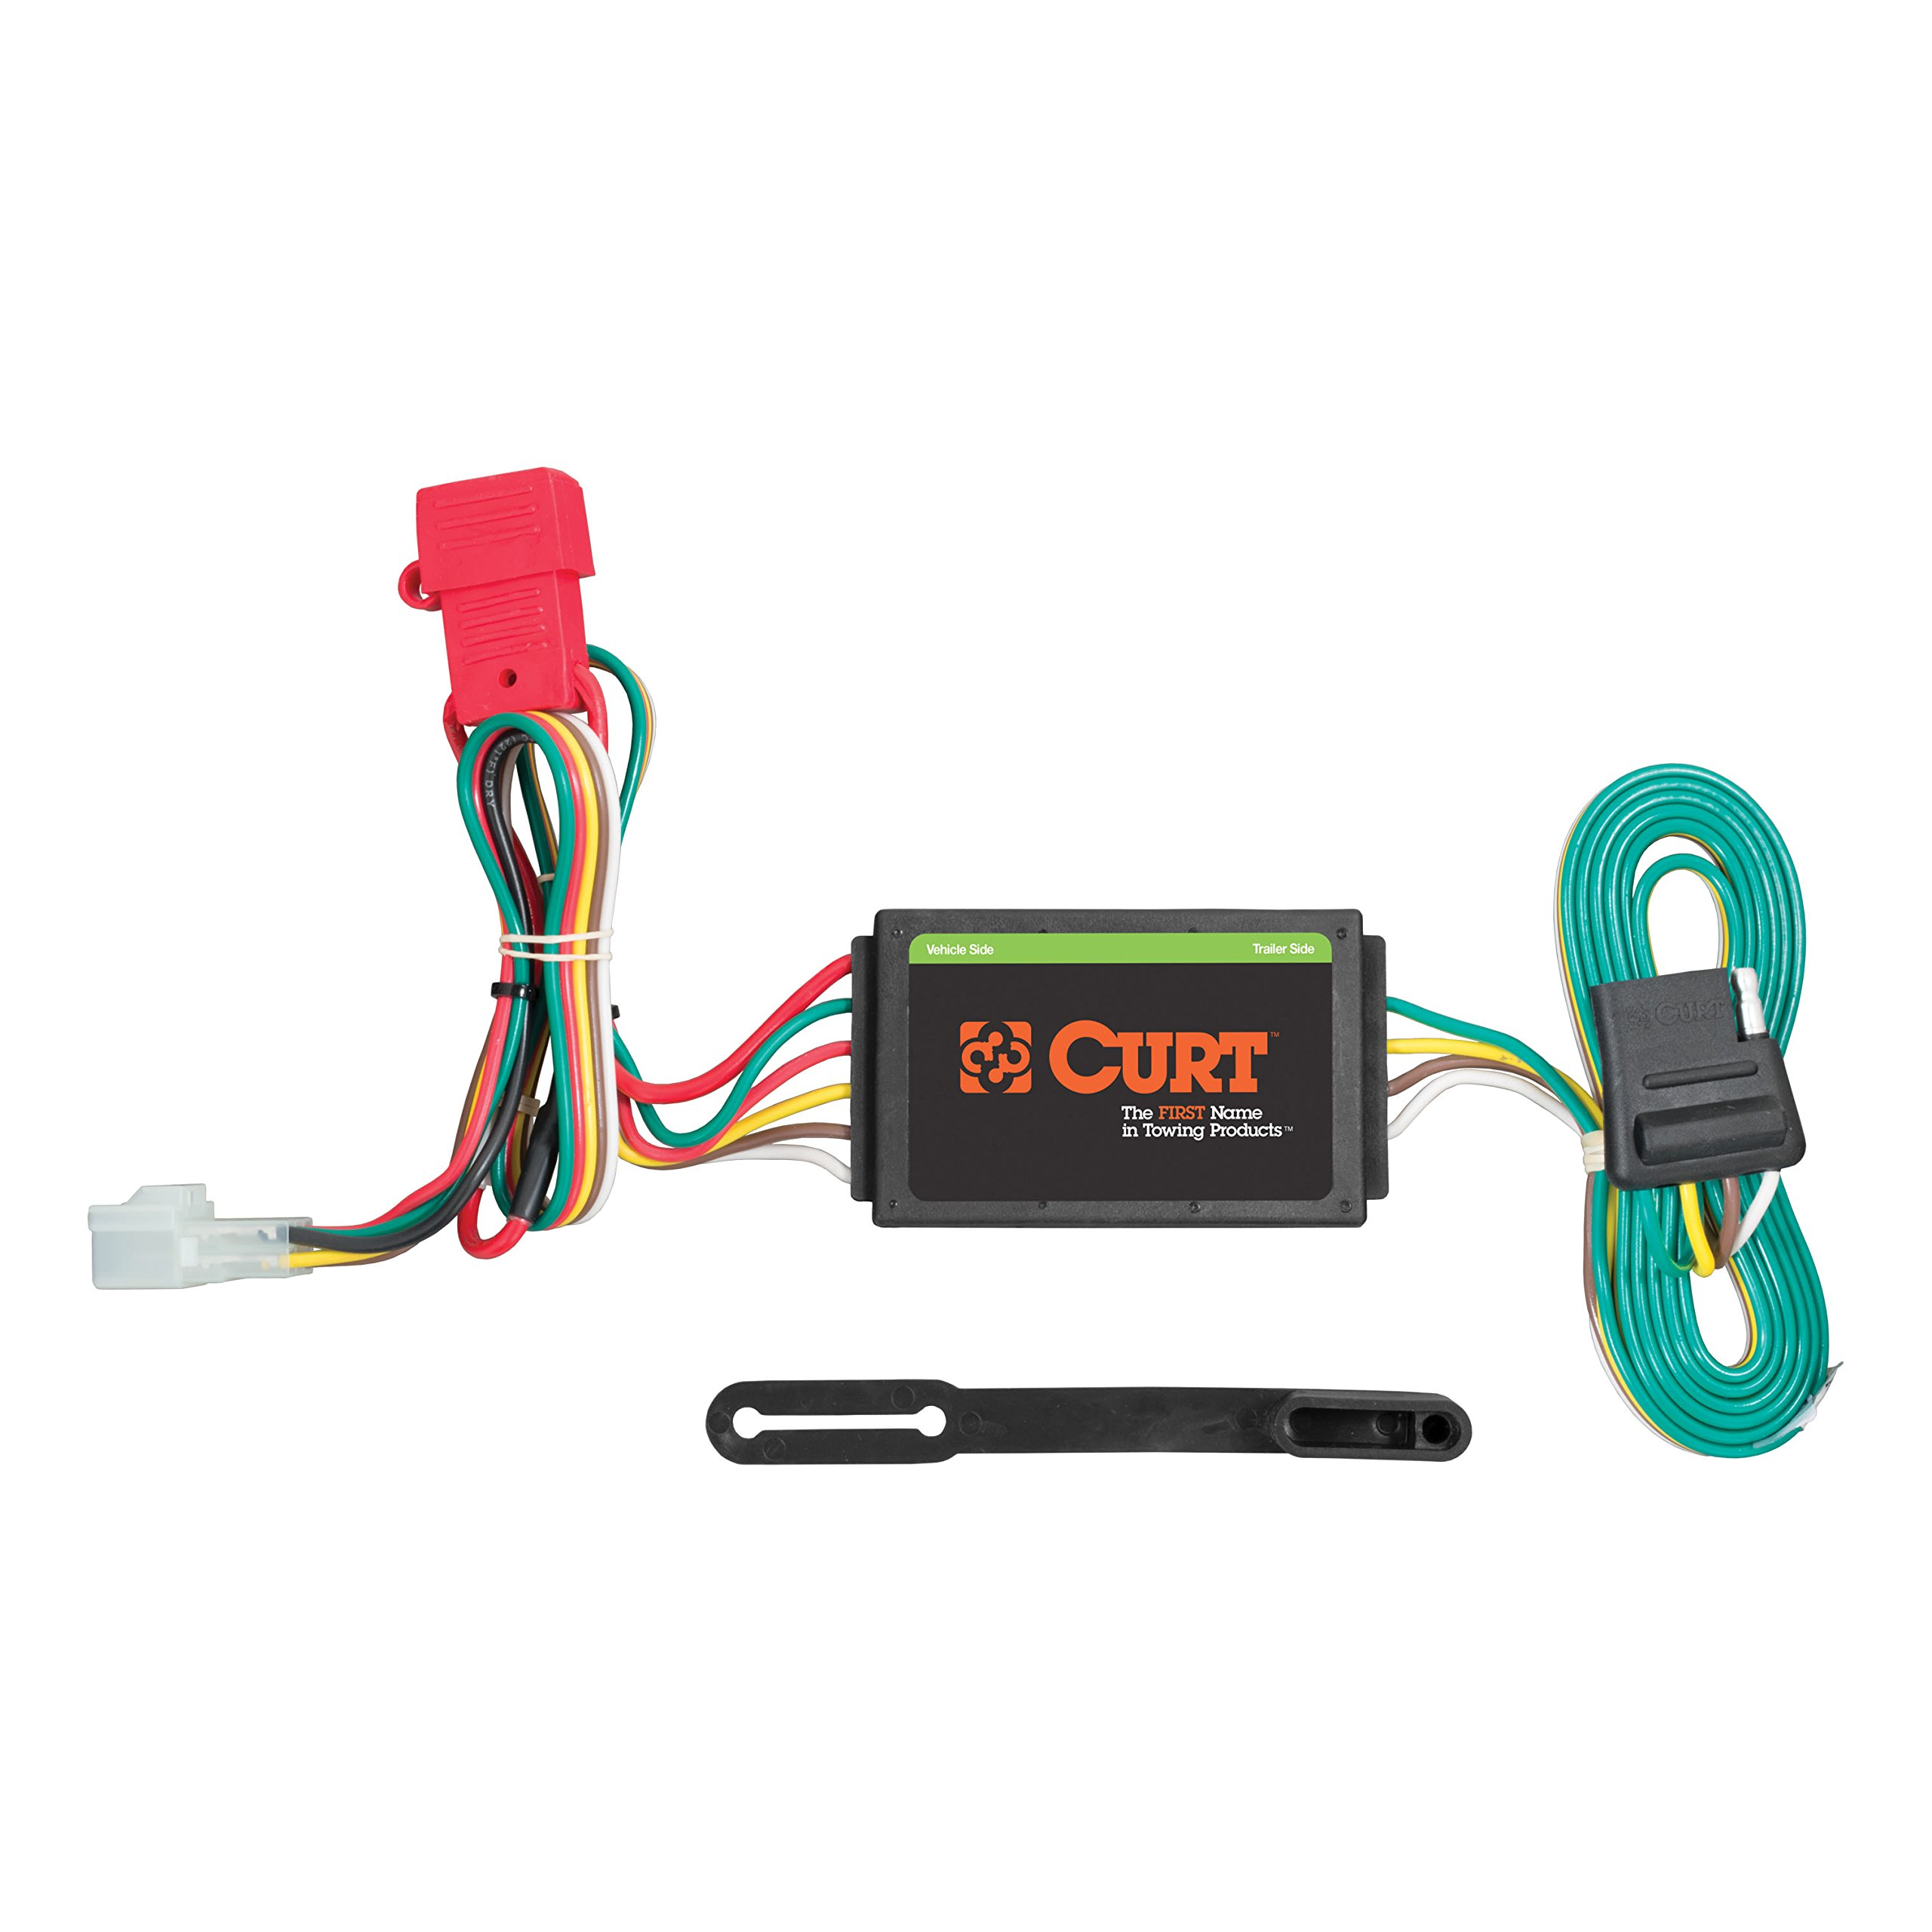 CURT 55370 Vehicle-Side Custom 4-Pin Trailer Wiring Harness for Select Subaru Forester, Legacy, Outback, B9 Tribeca, WRX by Curt Manufacturing